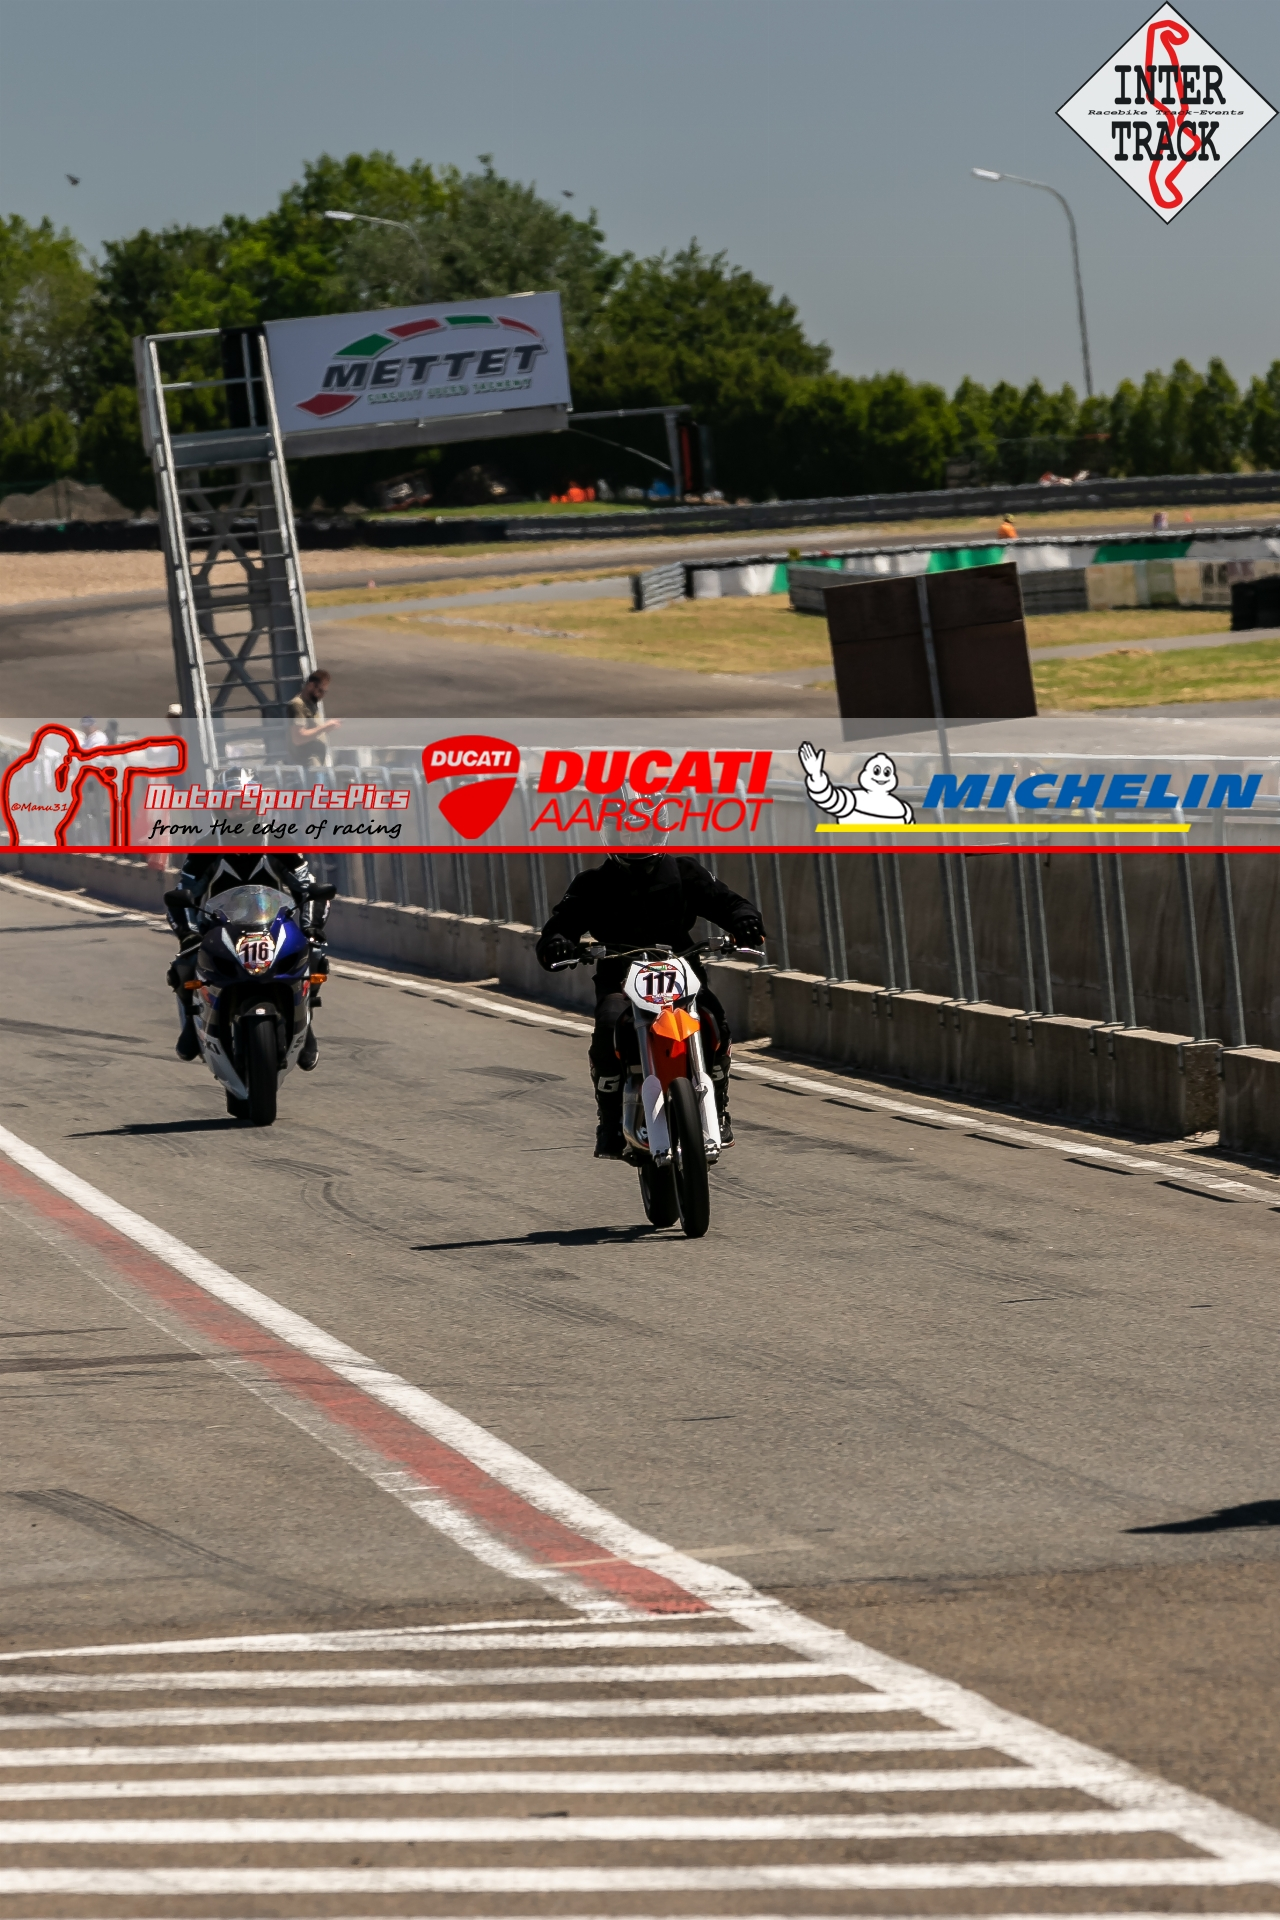 28-06-19 Inter-Track at Mettet Ducati Aarschot Day Group 1 Green #134